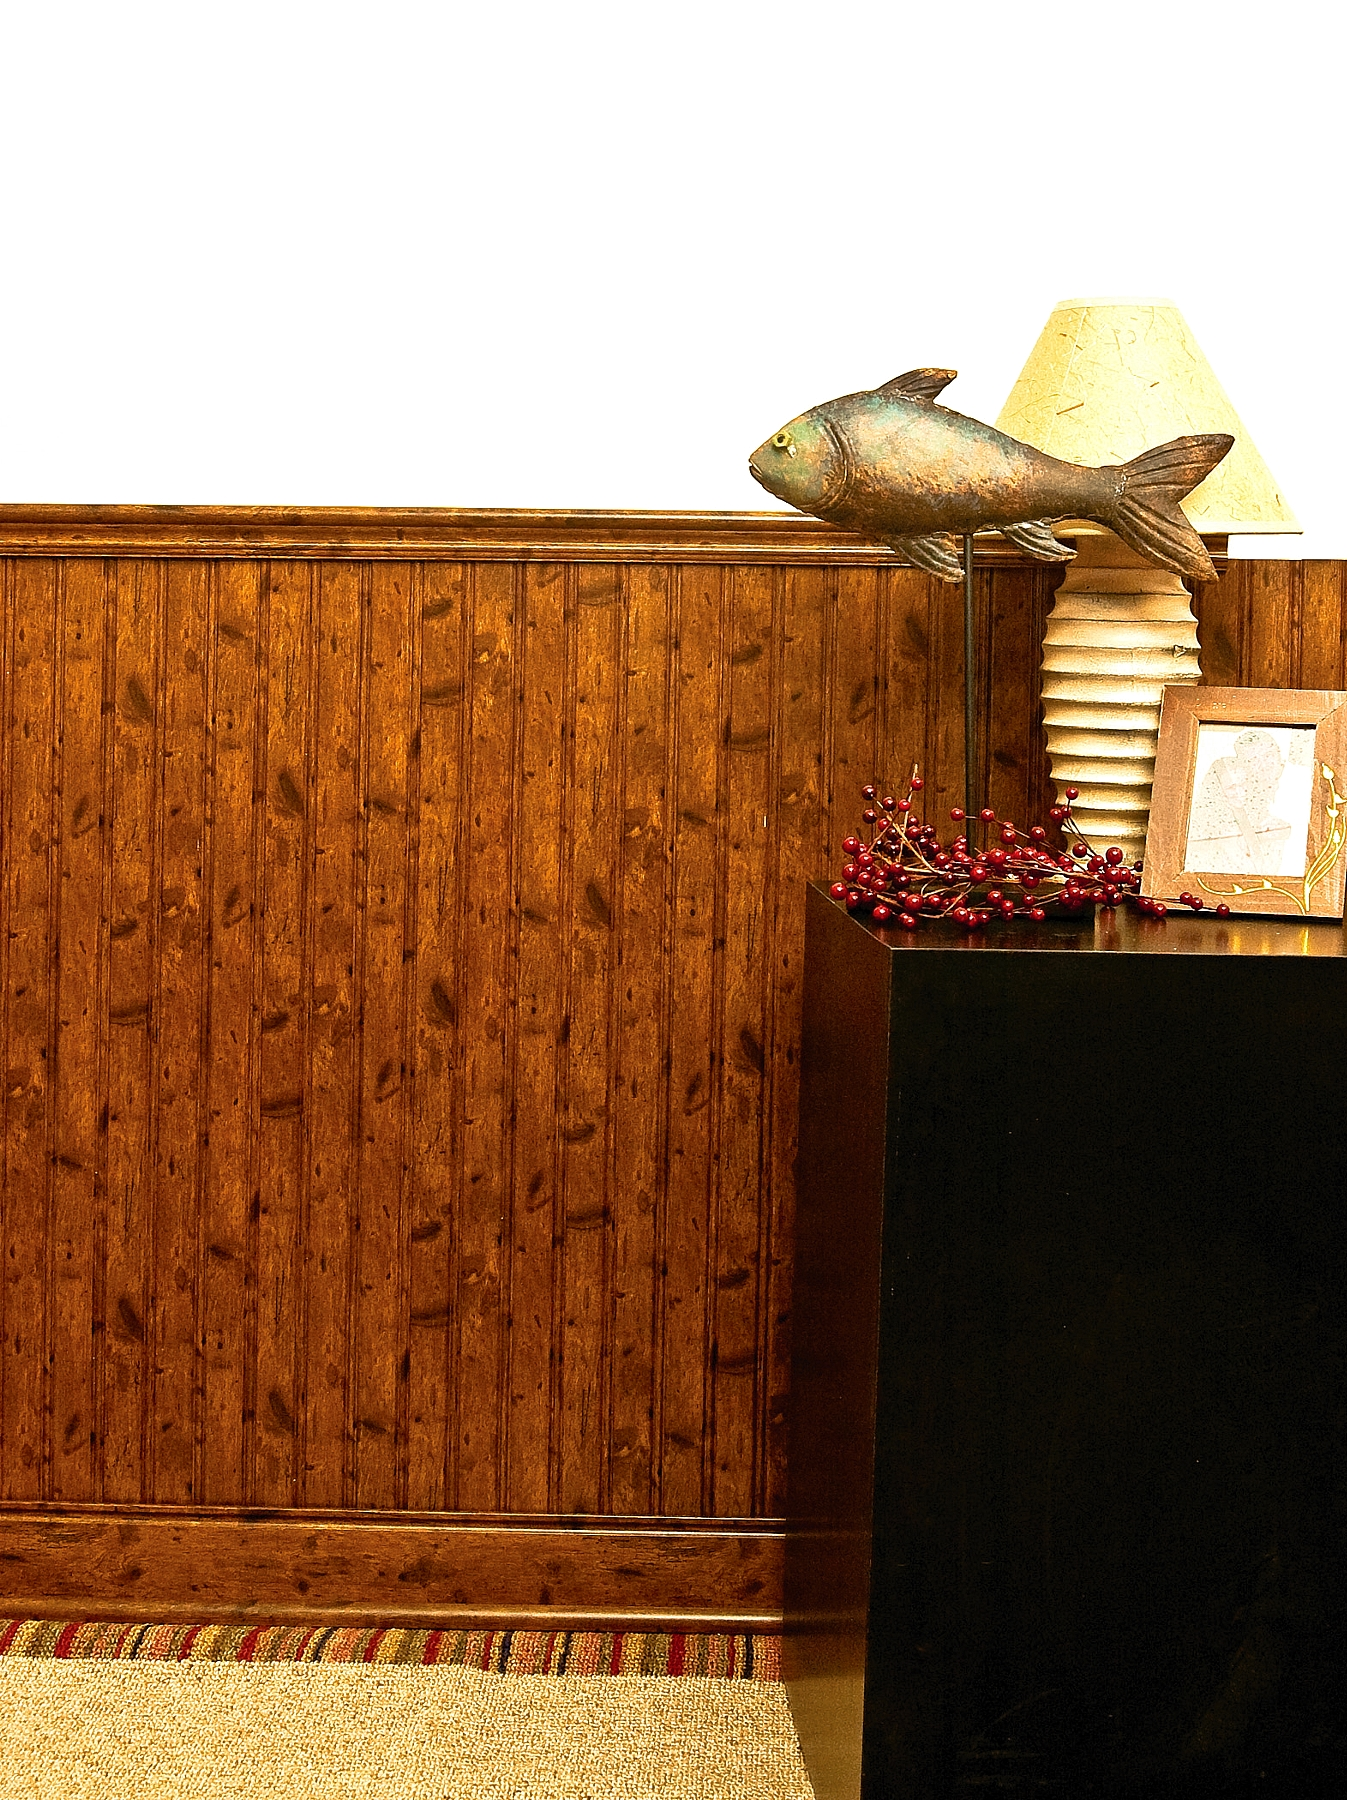 Outwater Introduces Its Interlocking Beaded Wainscoting